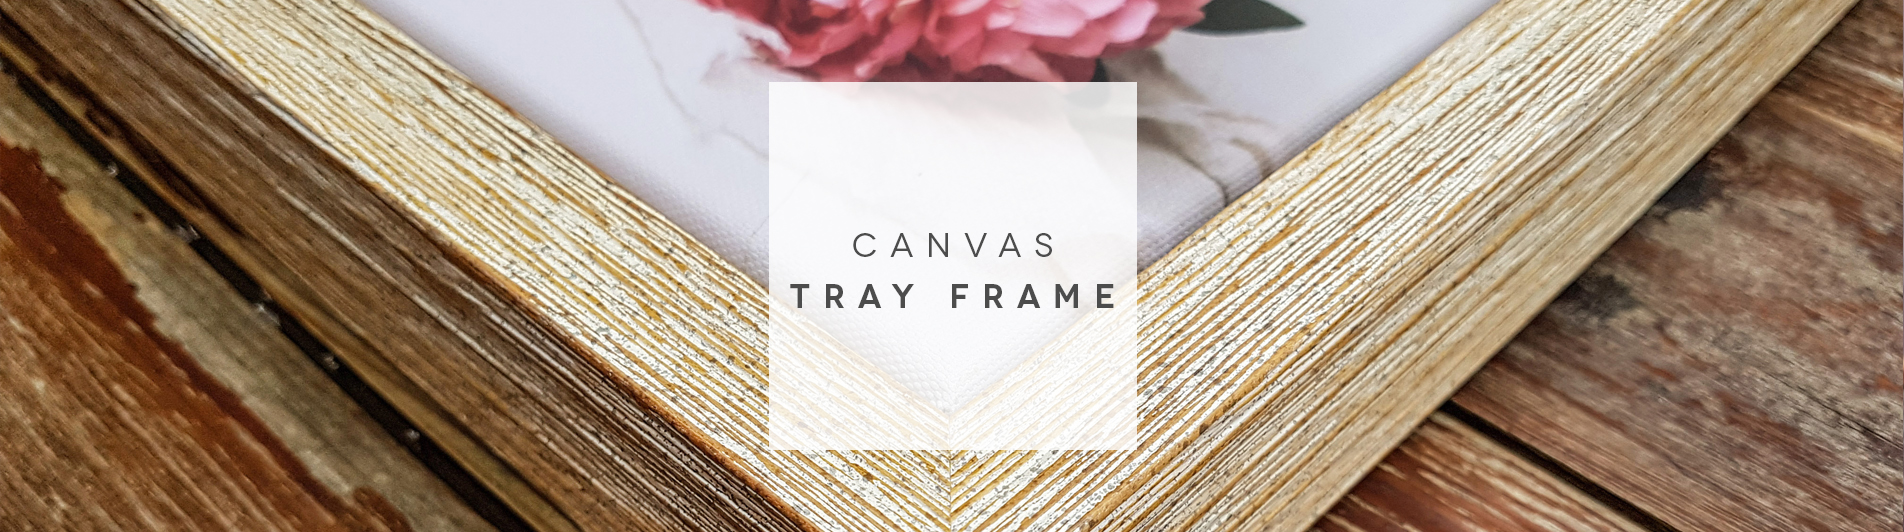 Canvas Tray Frame